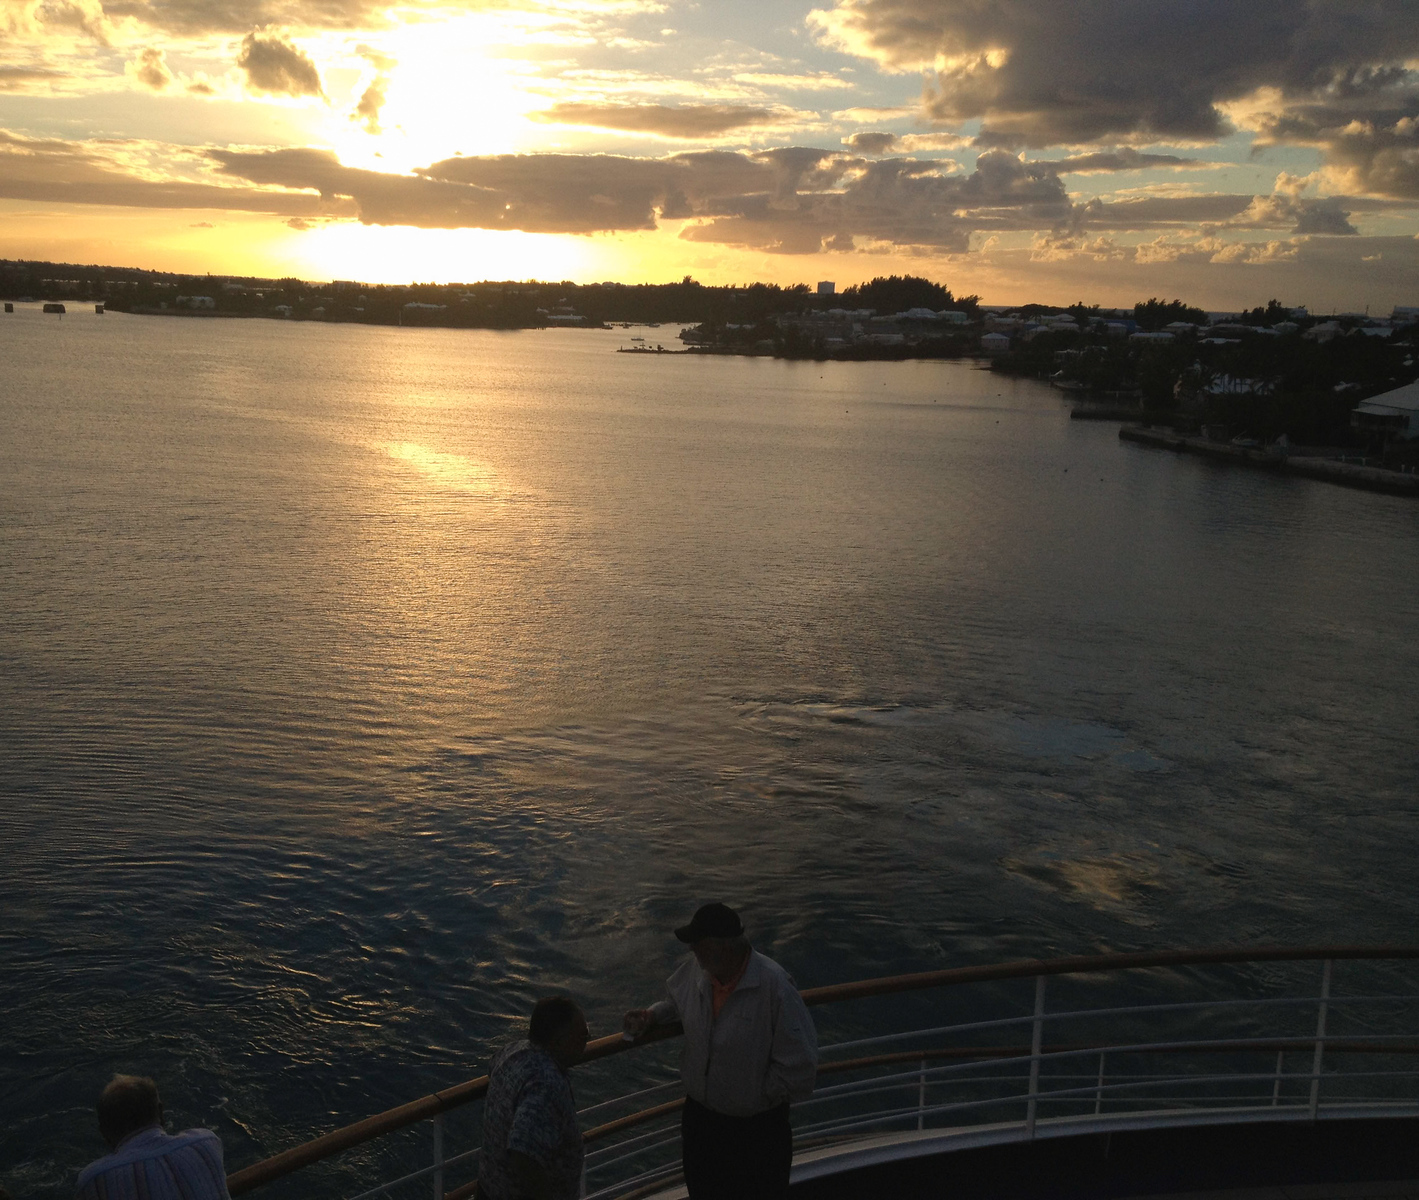 On a Transatlantic cruise, photographing the sunset is part of the boomer travel fun. Be sure to read more of our luxury cruise travel tips for crossing the Atlantic.